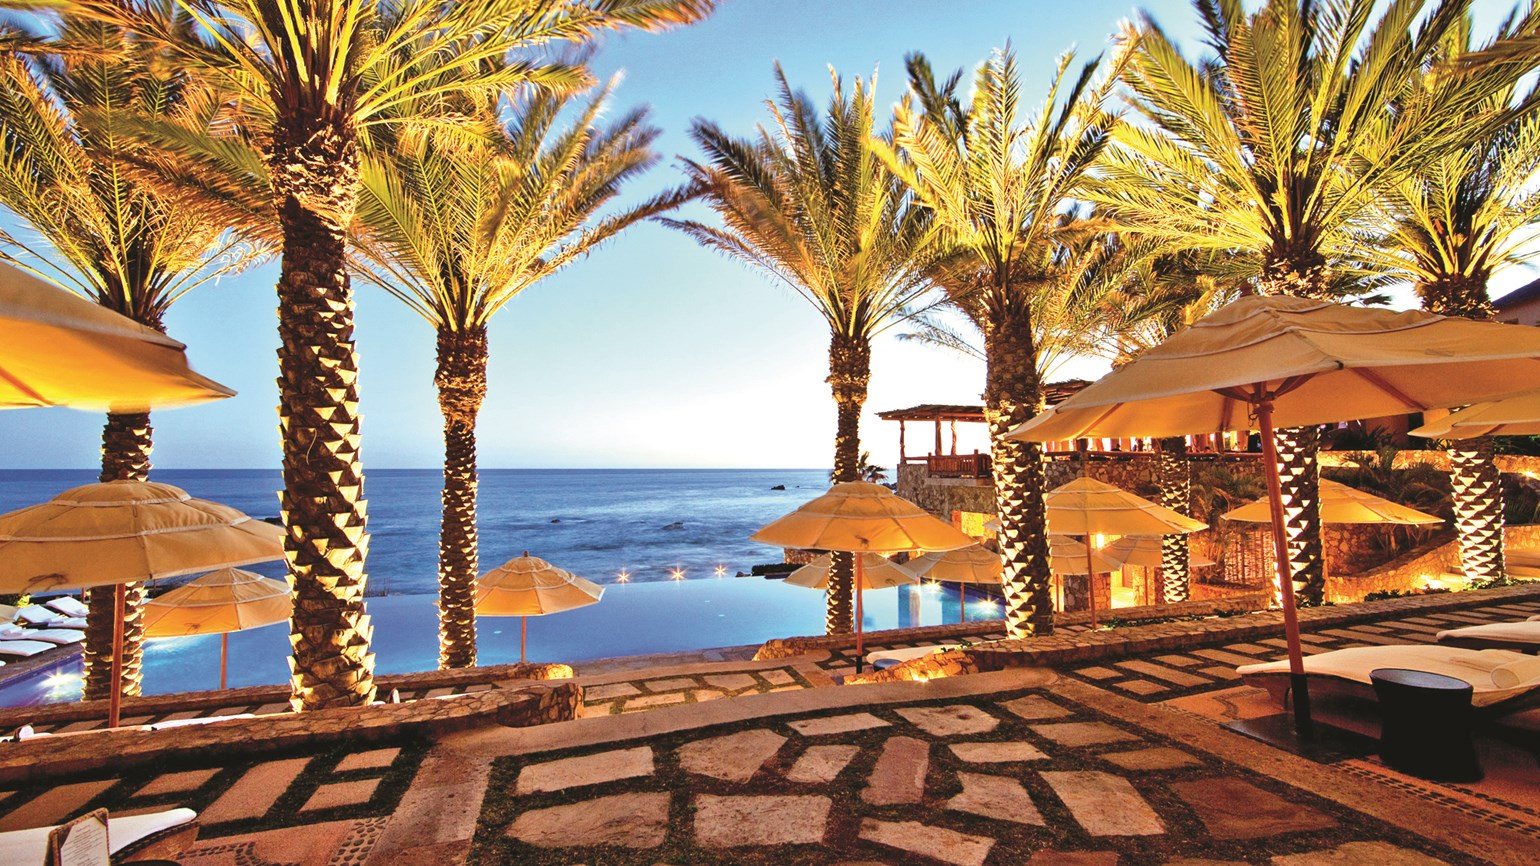 Los Cabos renewed after Odile